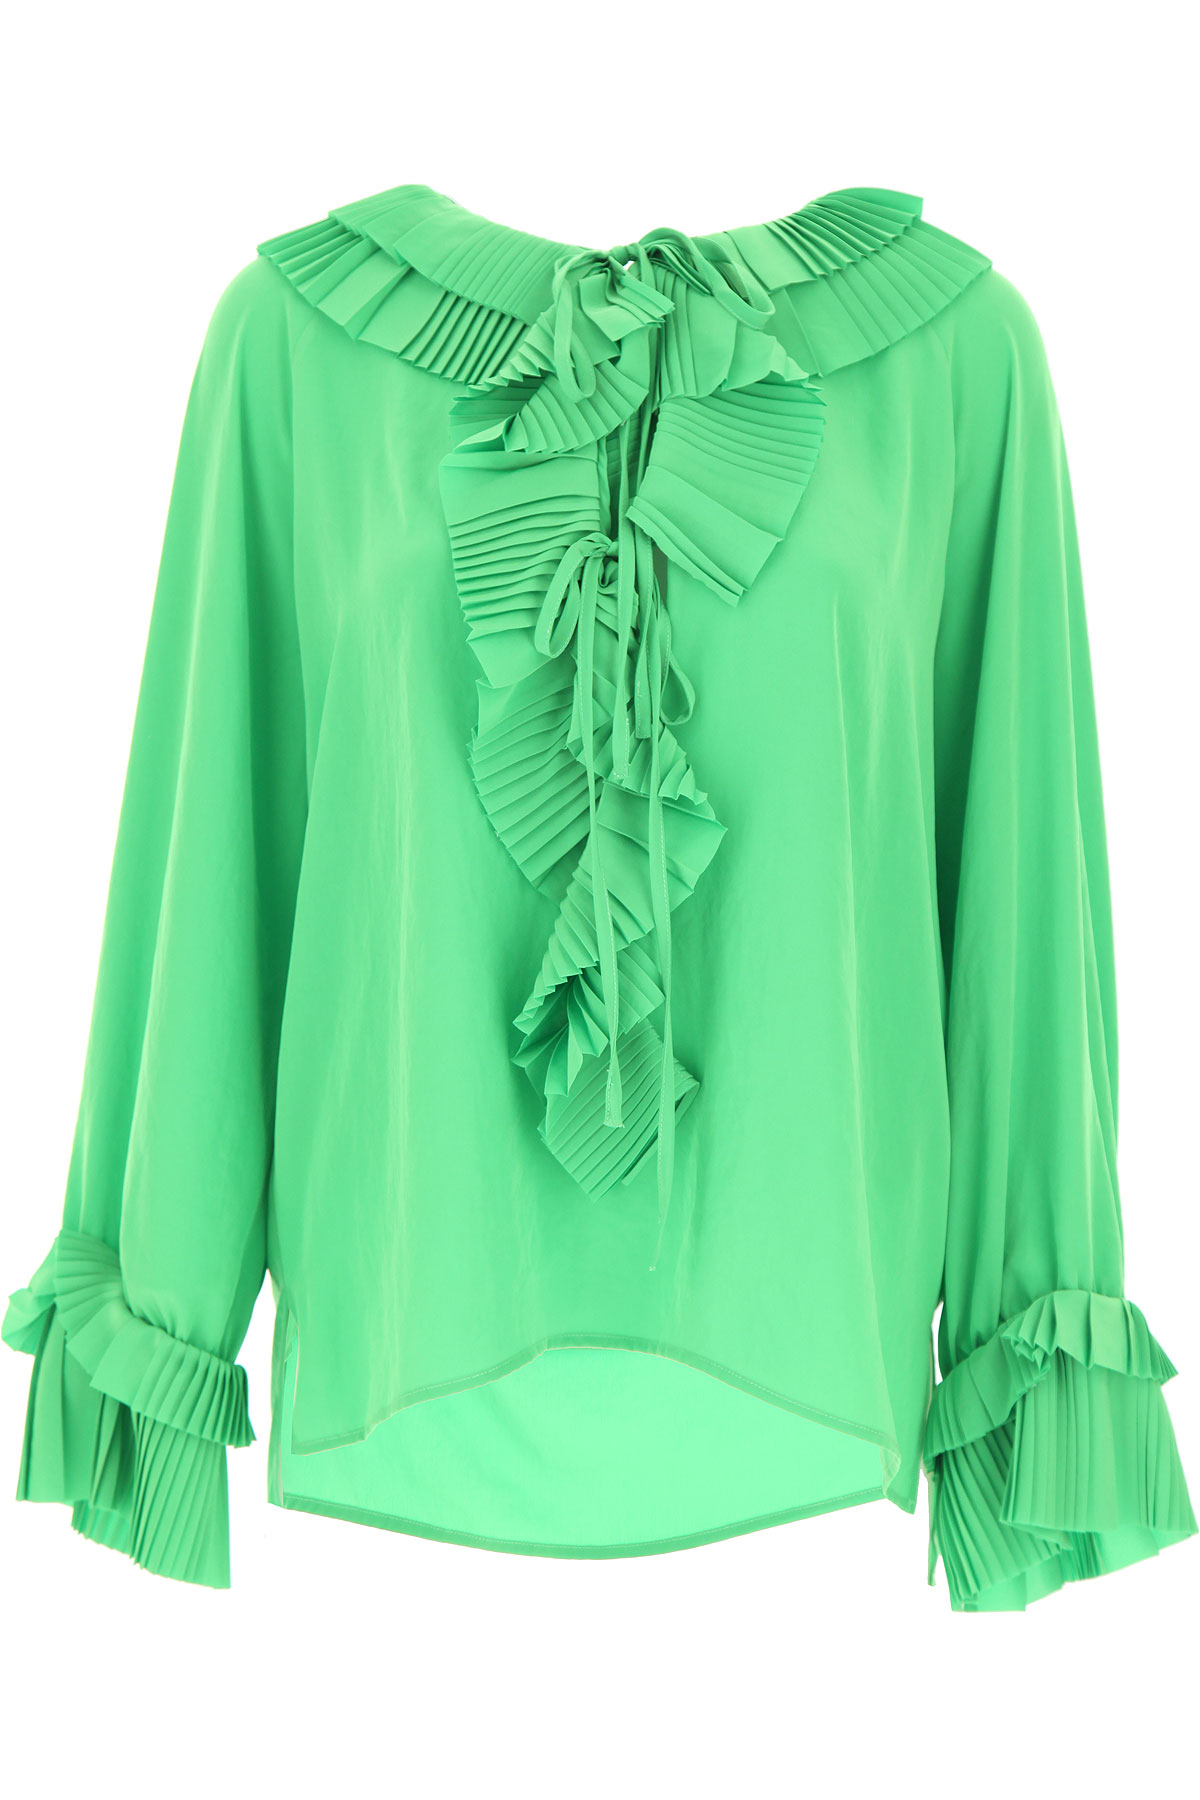 P.A.R.O.S.H. Top for Women On Sale, Green, polyester, 2019, 6